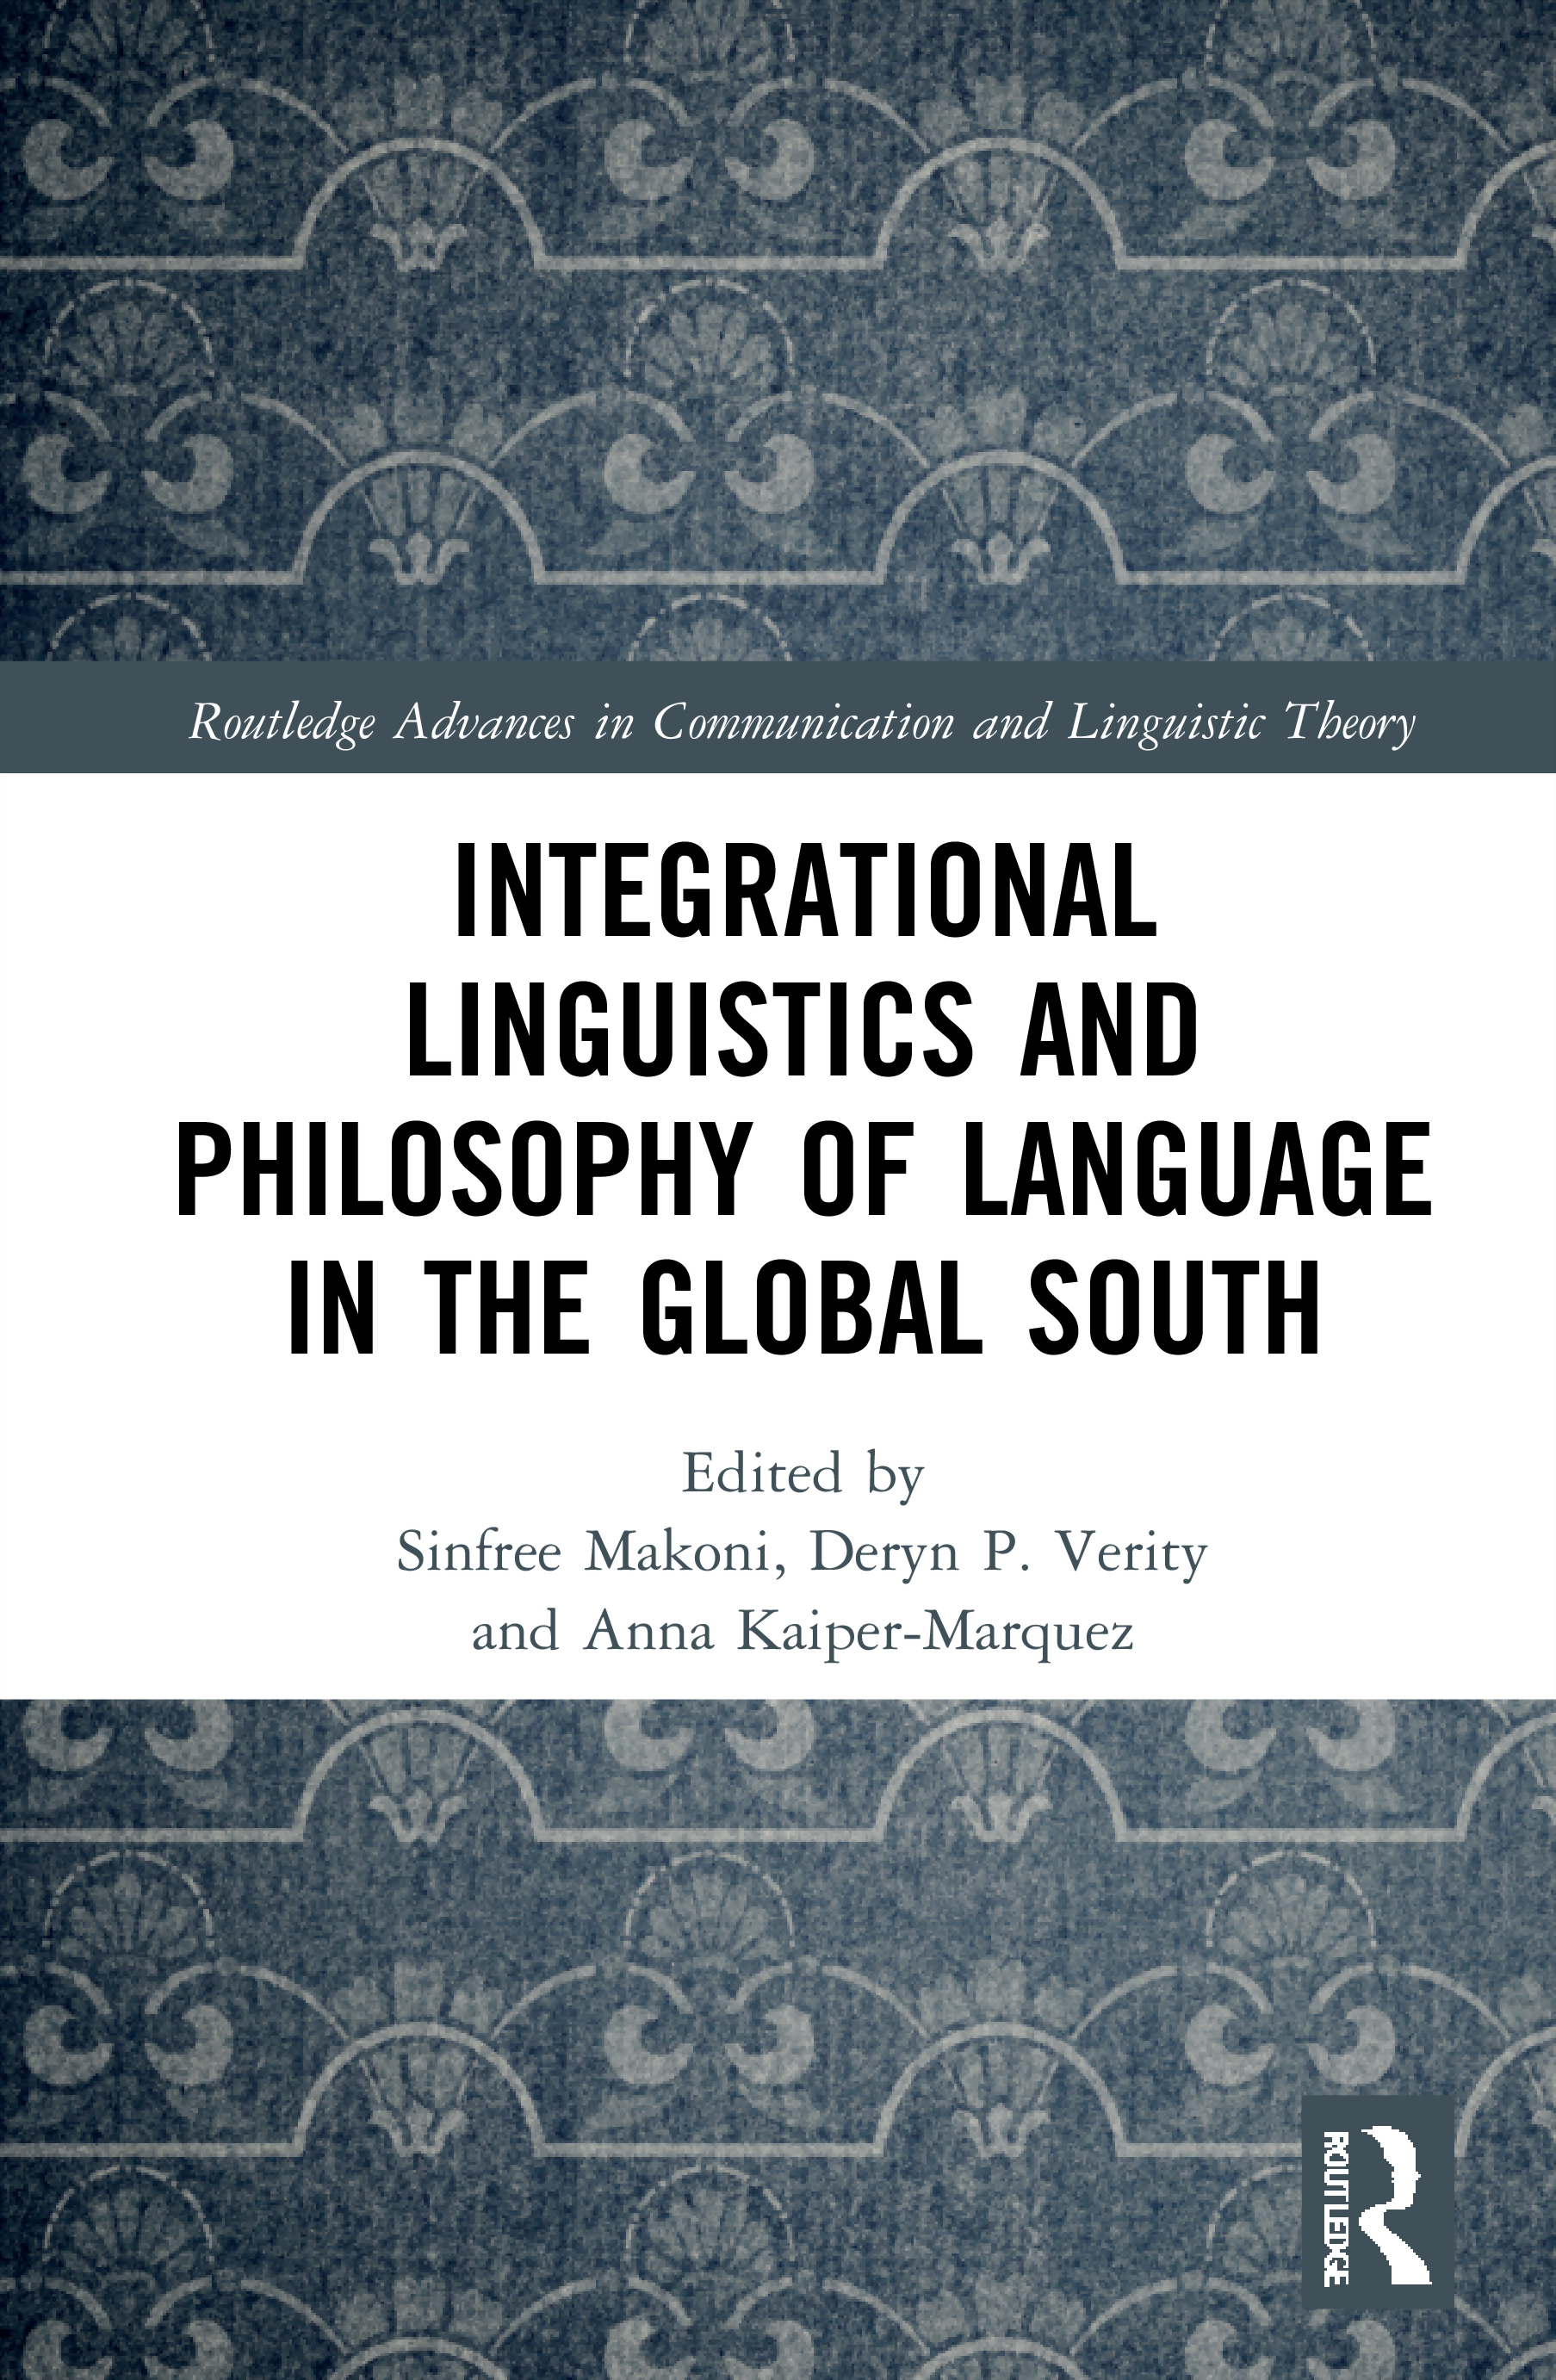 Integrationism and the Global South: Songs as epistemic frameworks